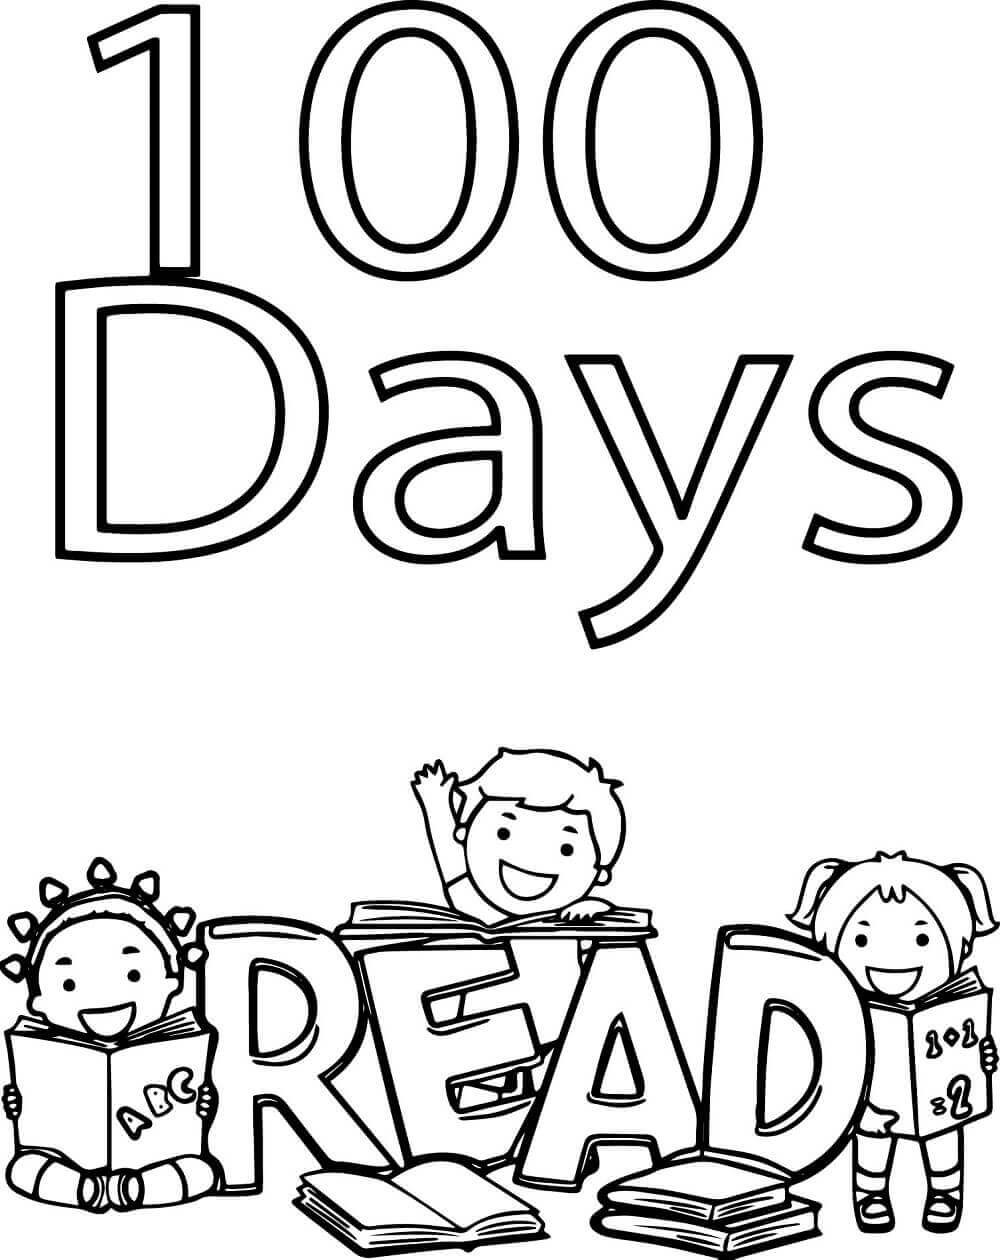 100 Days Of School Worksheet Free Printable 100 Days School Coloring Pages